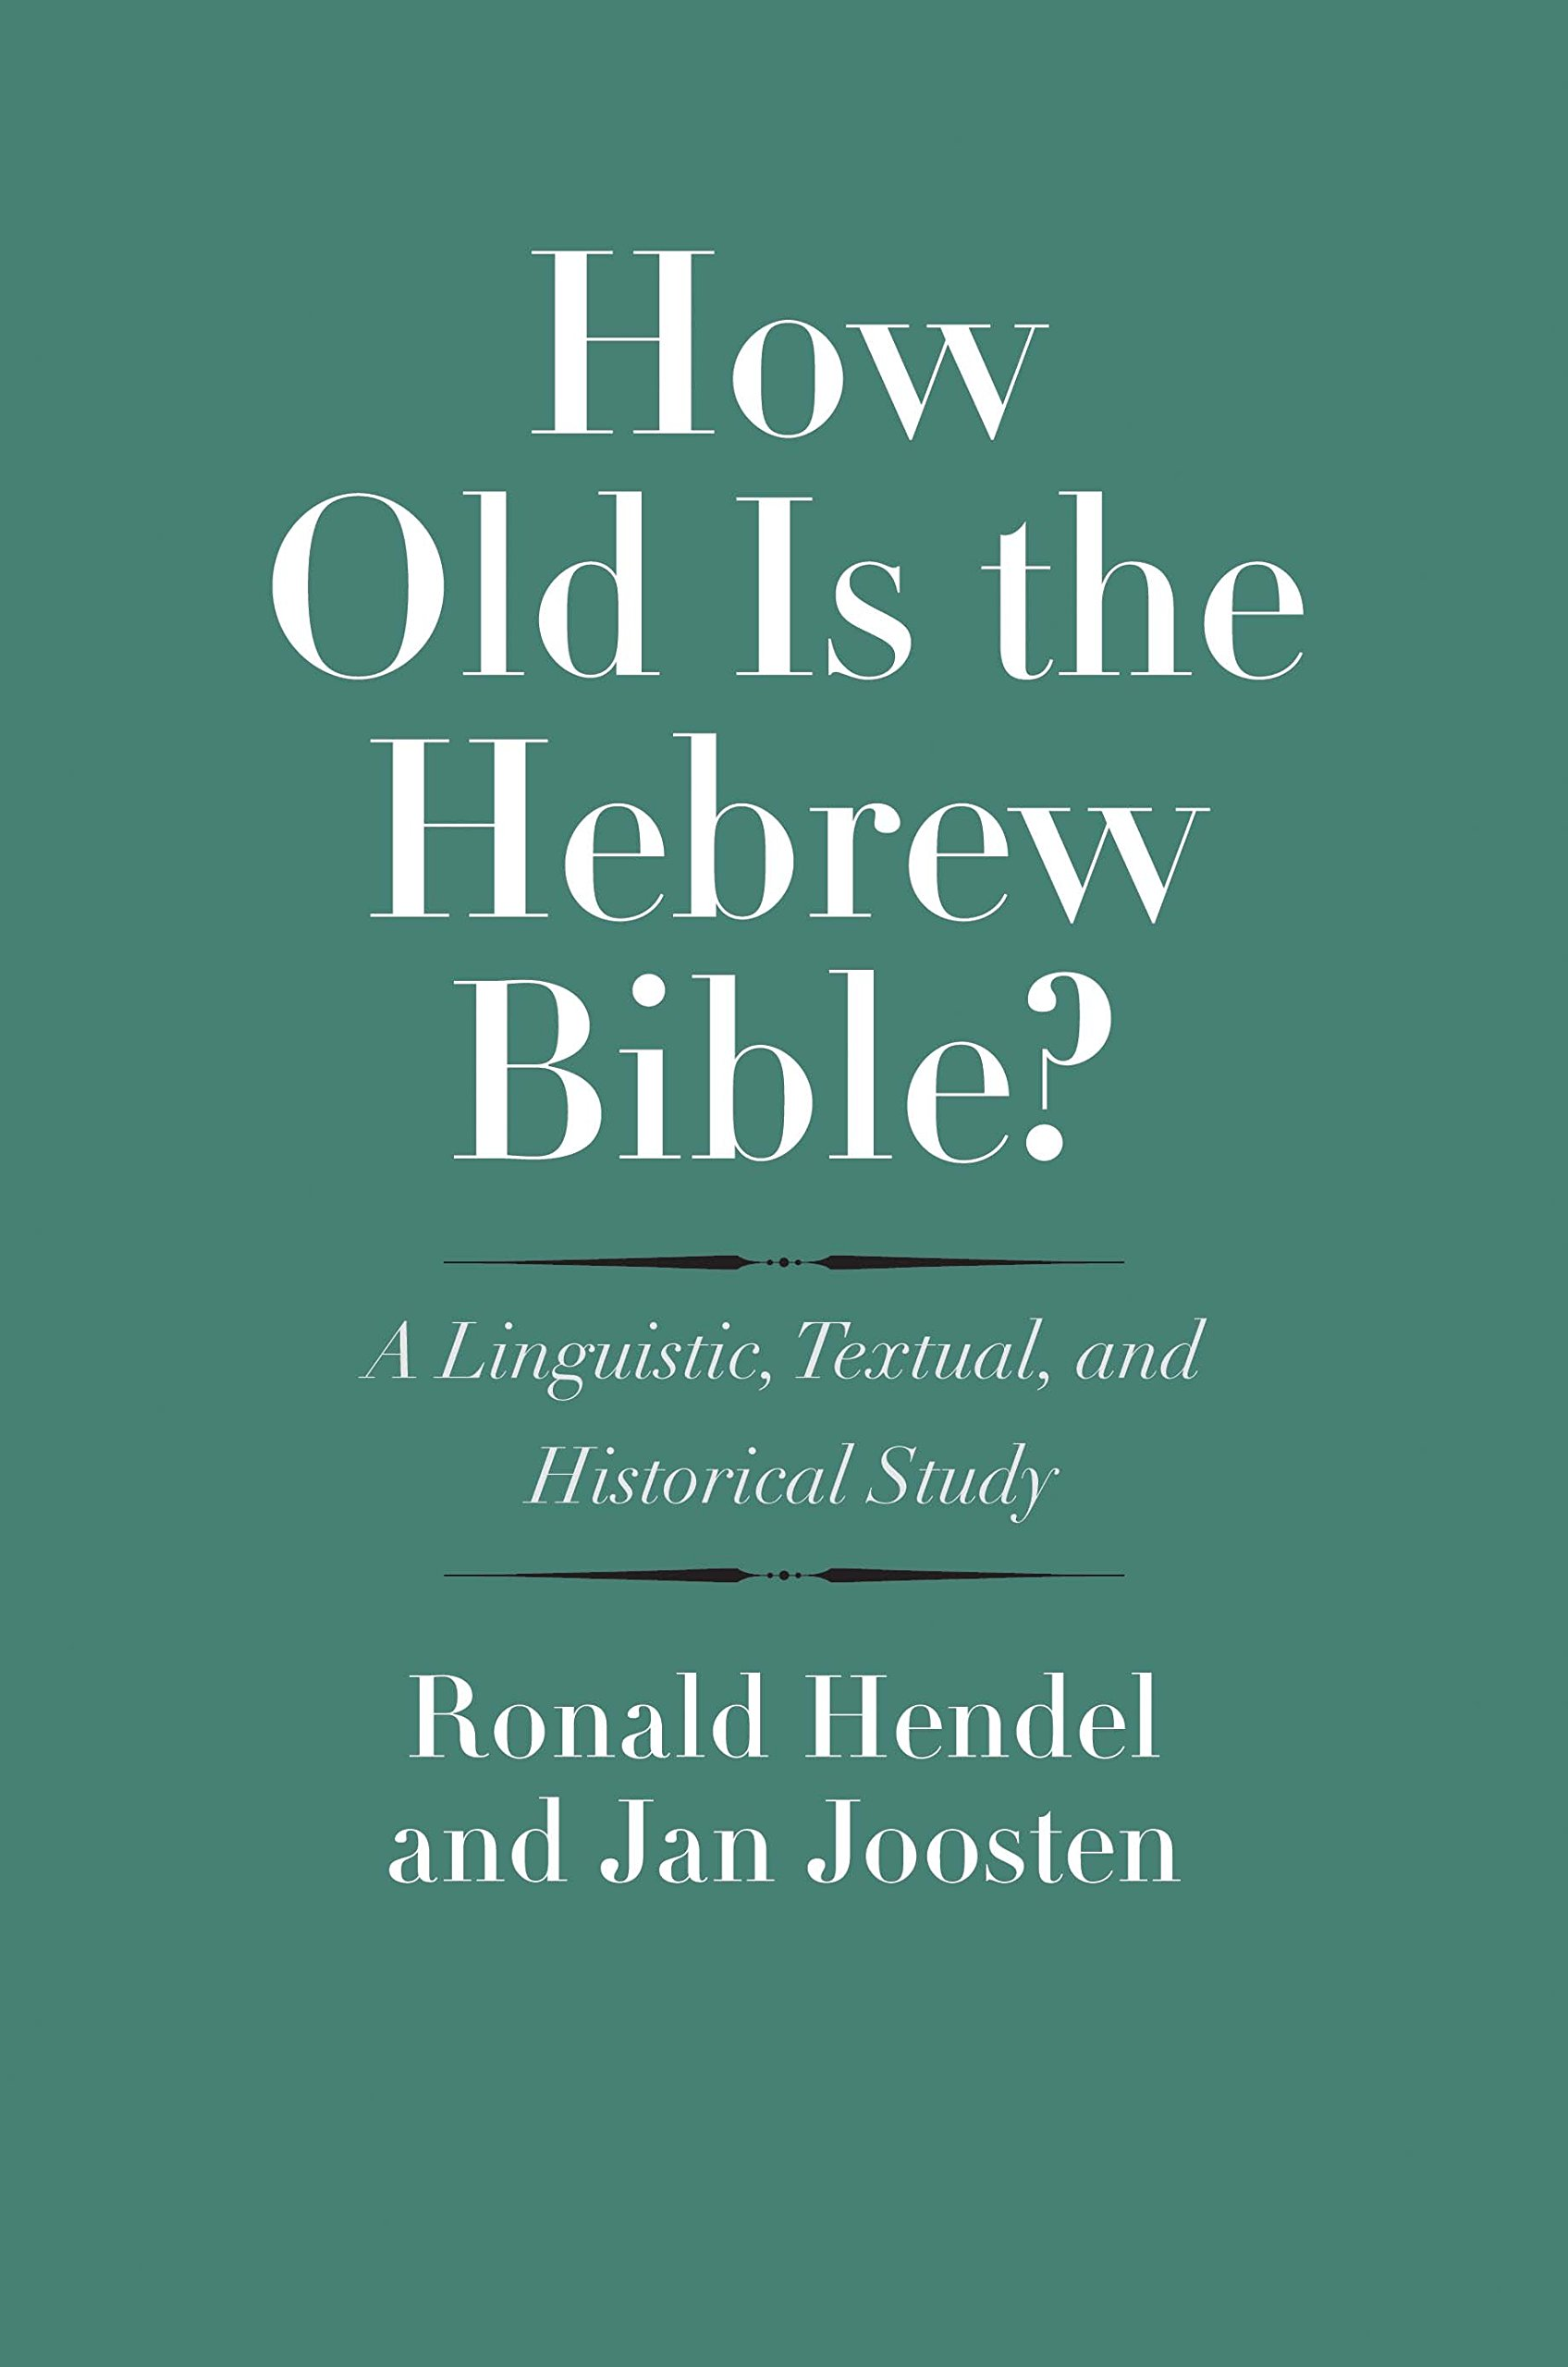 How Old Is the Hebrew Bible?: A Linguistic, Textual, and